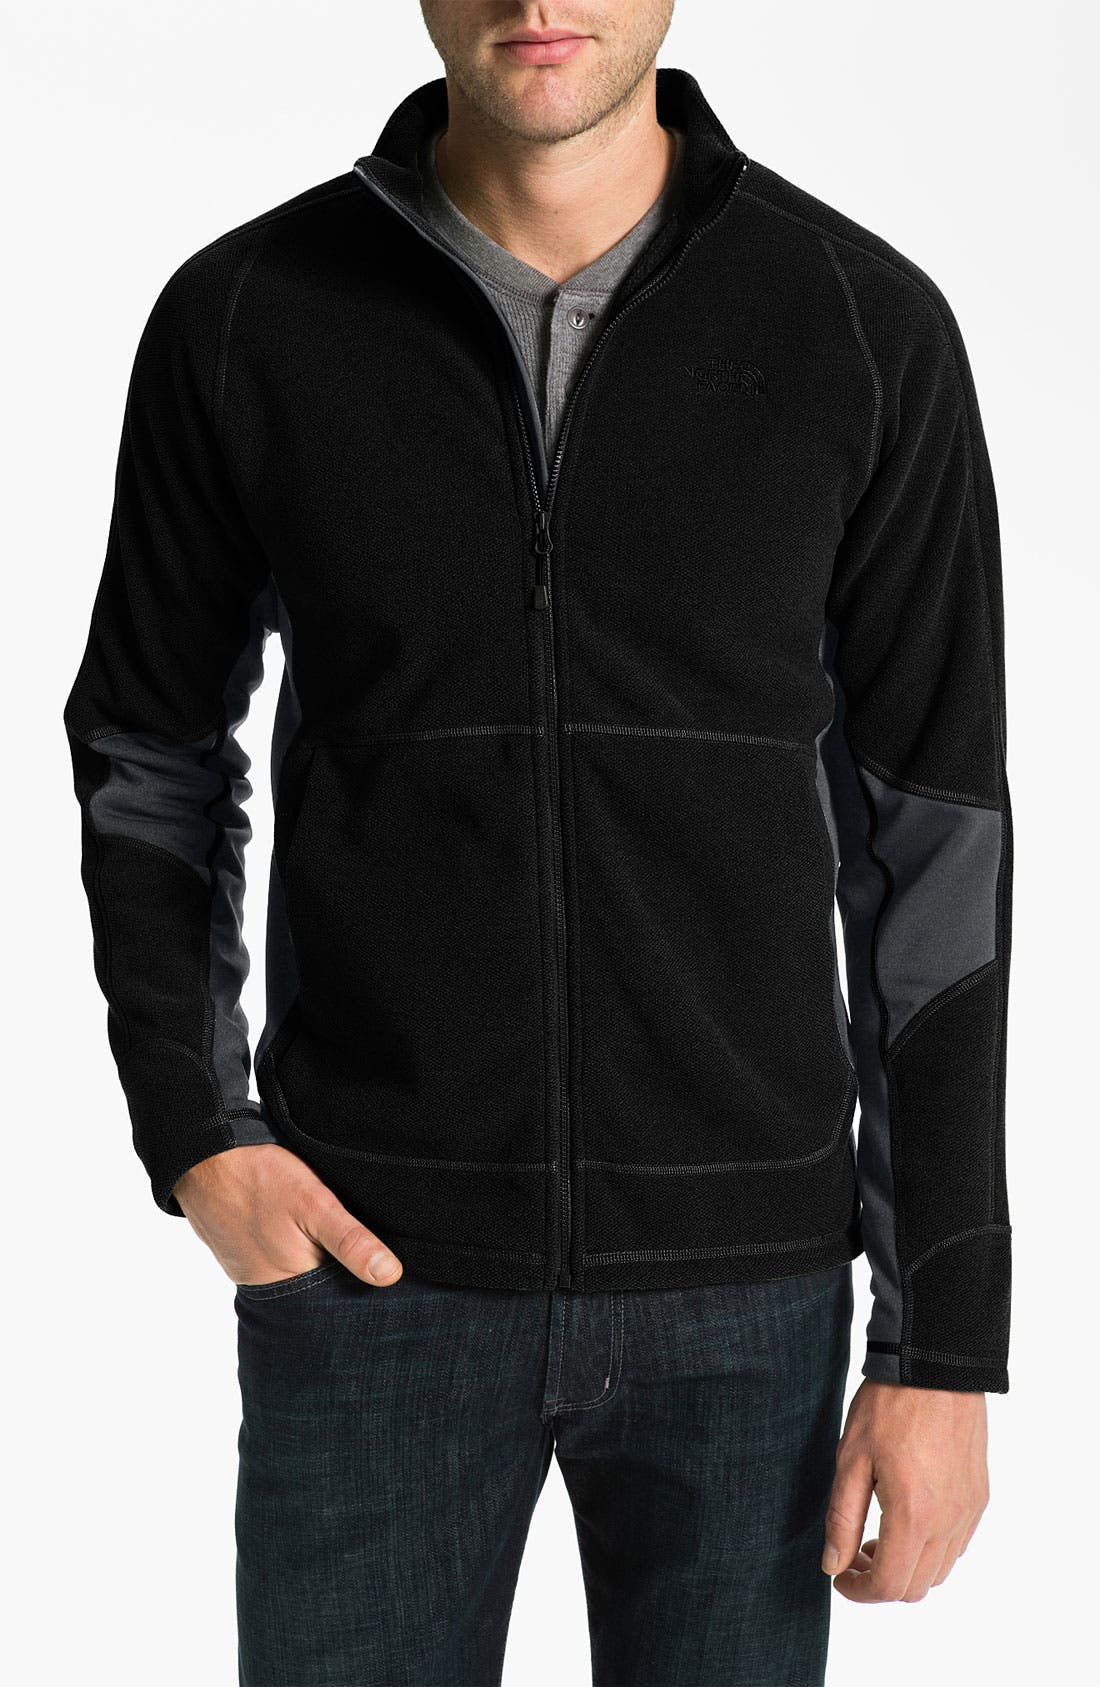 Alternate Image 1 Selected - The North Face 'Dihedral Hybrid' Fleece Jacket